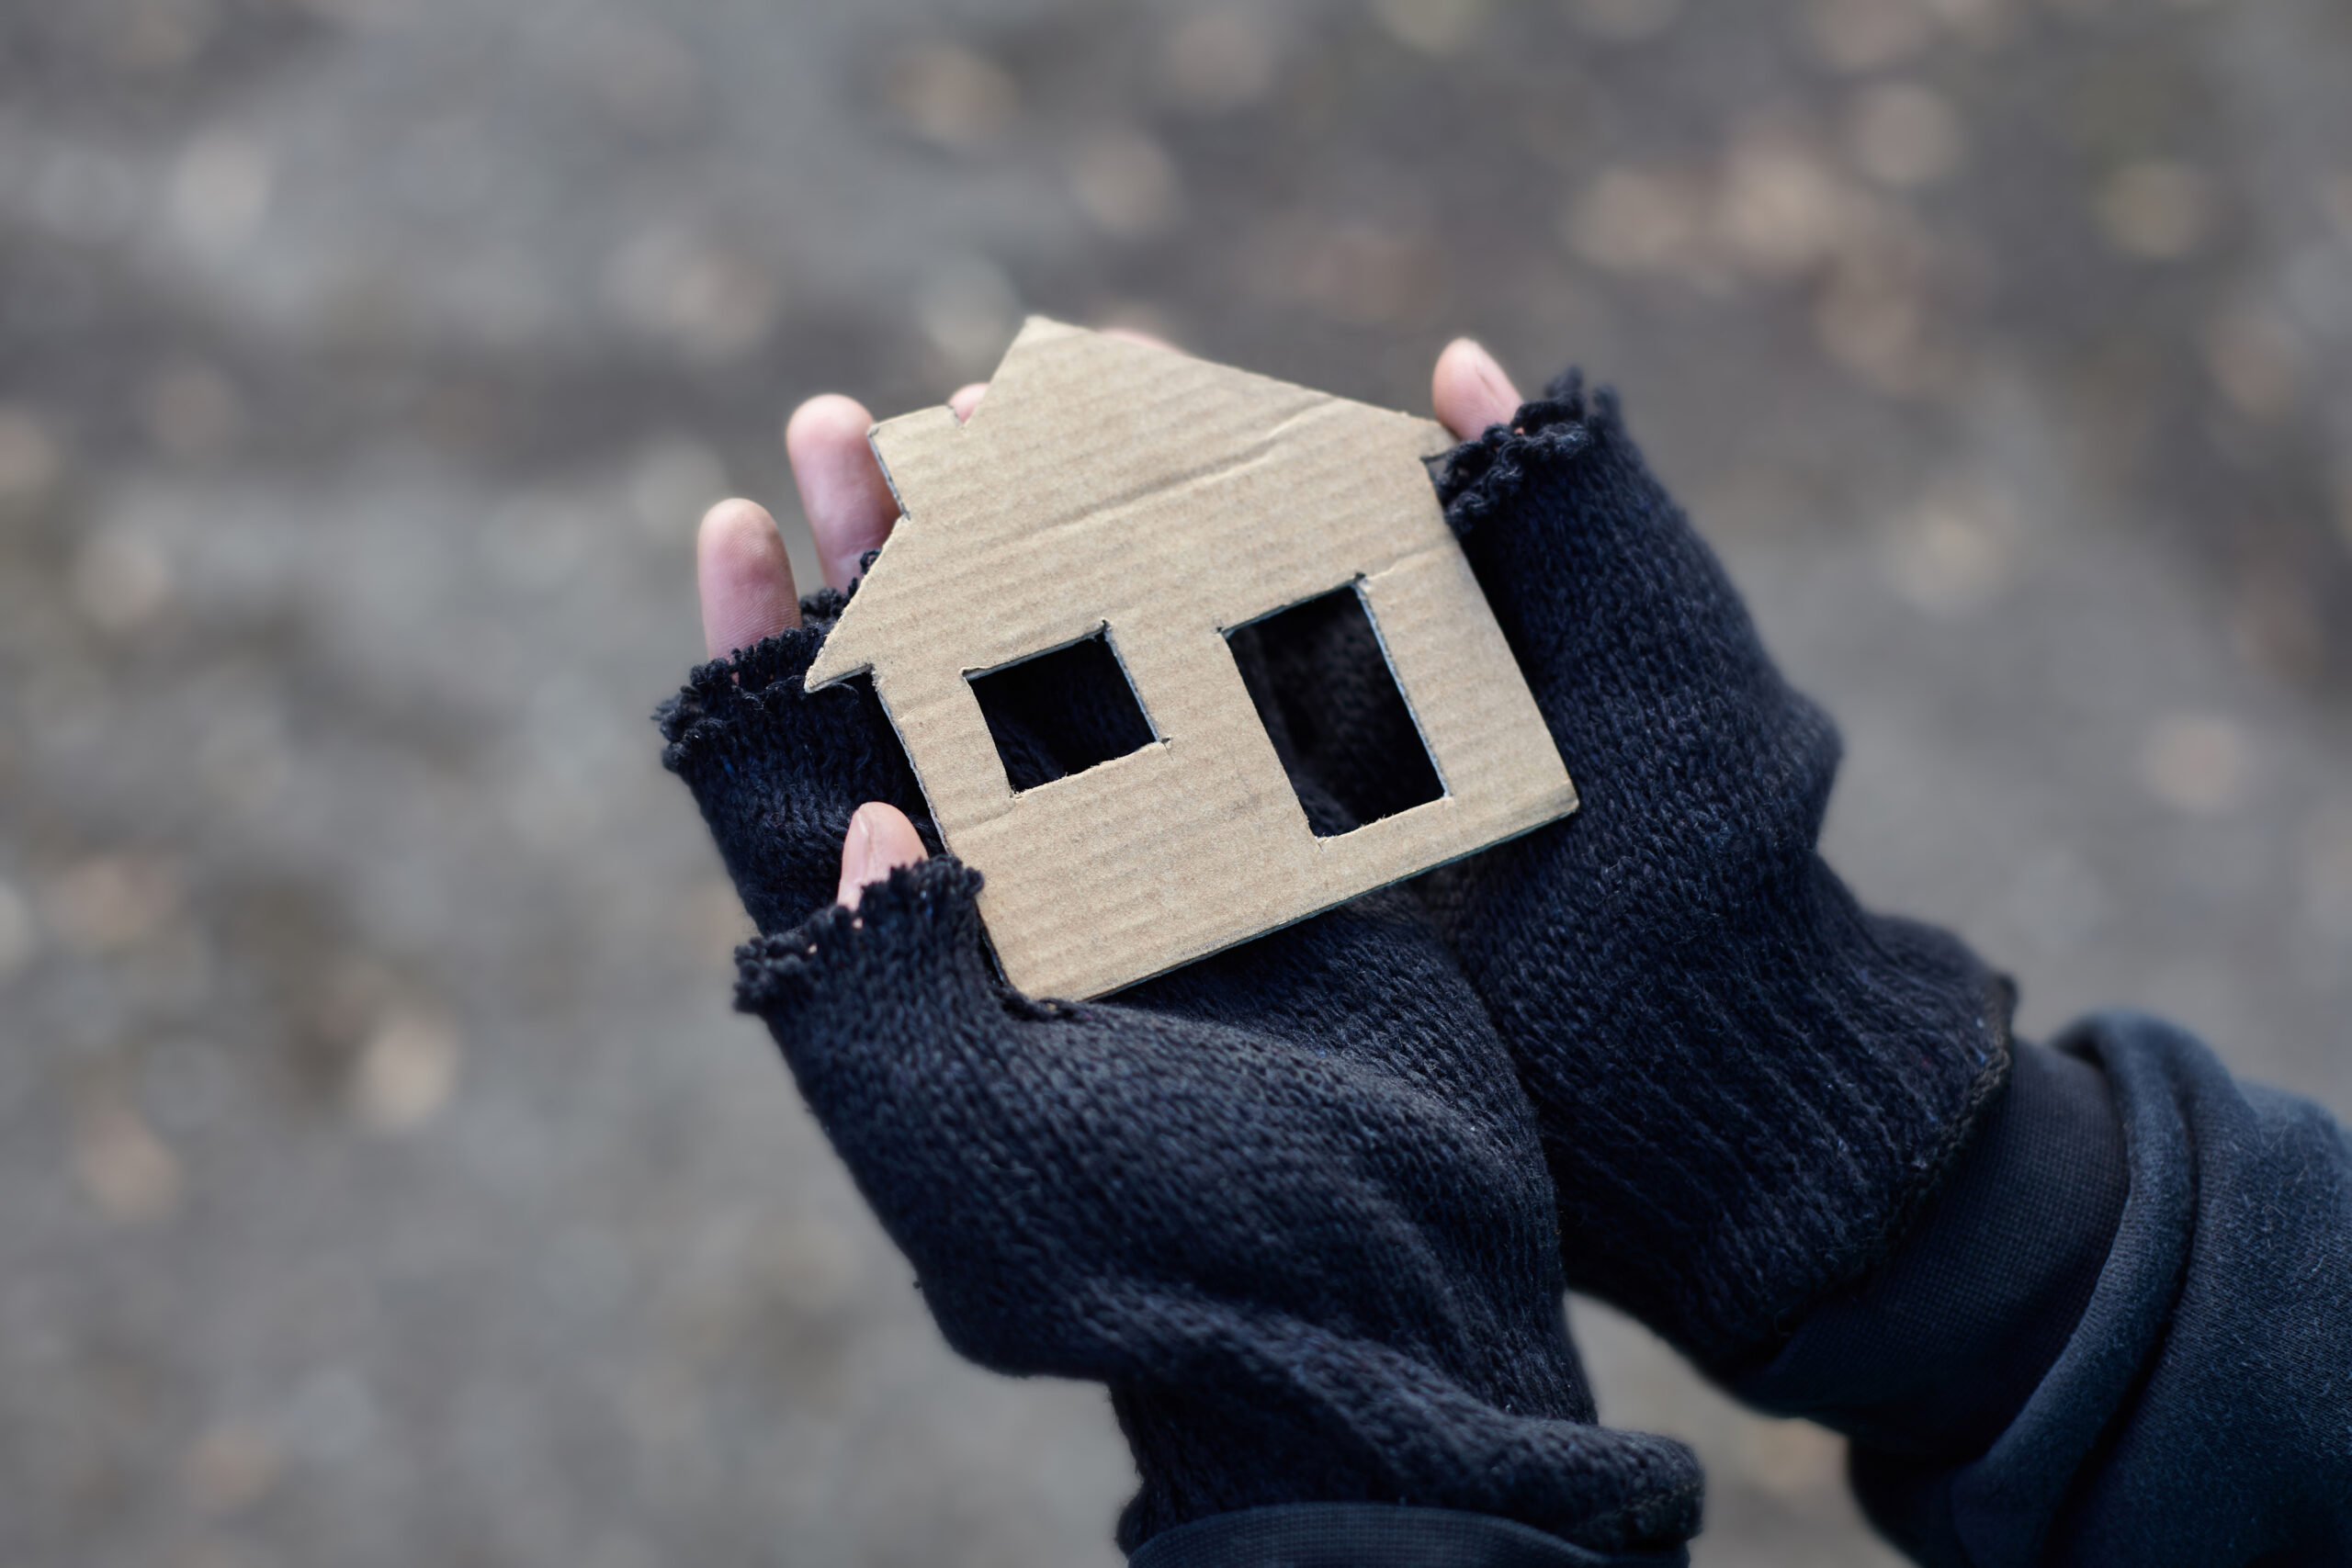 young homeless boy holding a cardboard house. Image credit: iStock